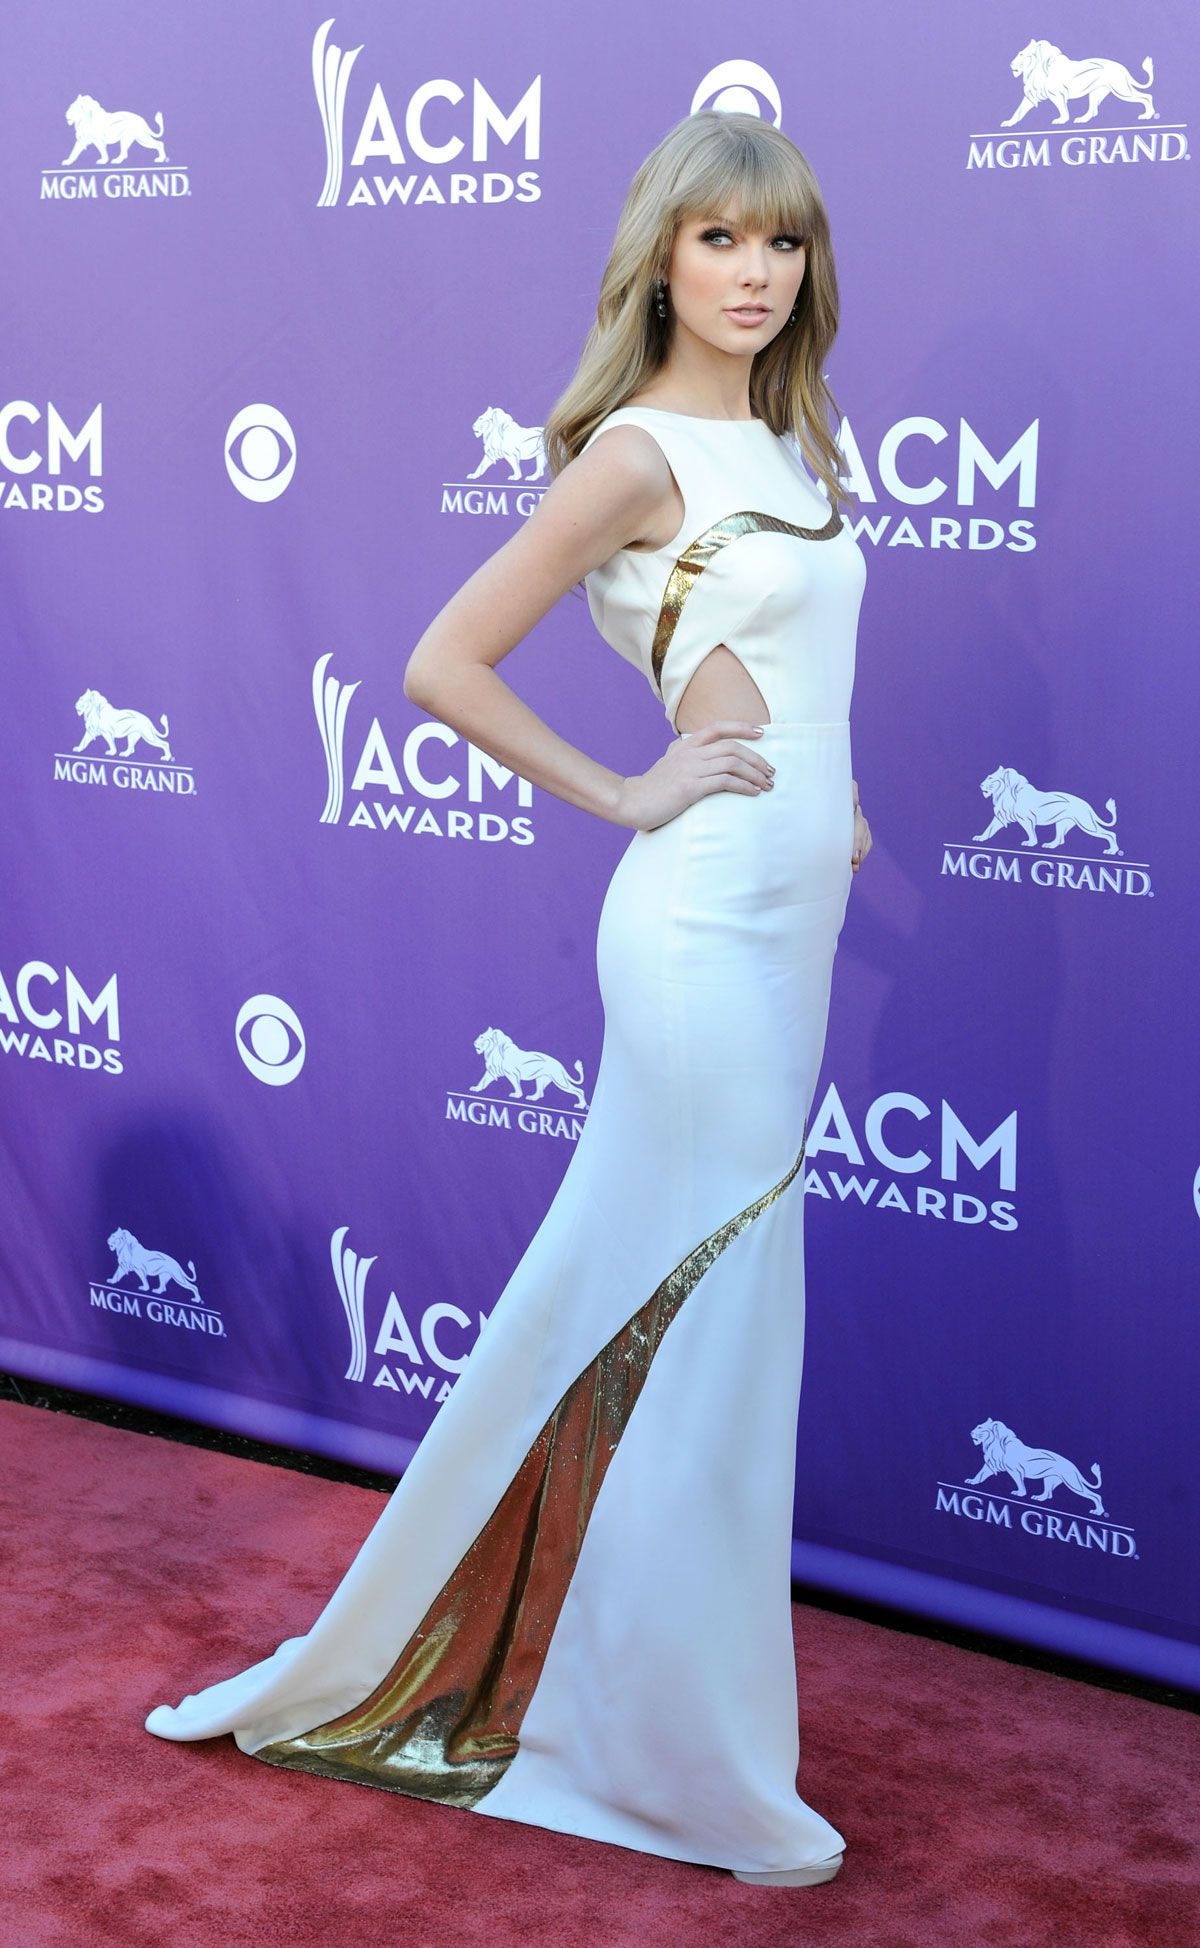 Taylor swift steps it up in sexy j mendel dress for acm awards